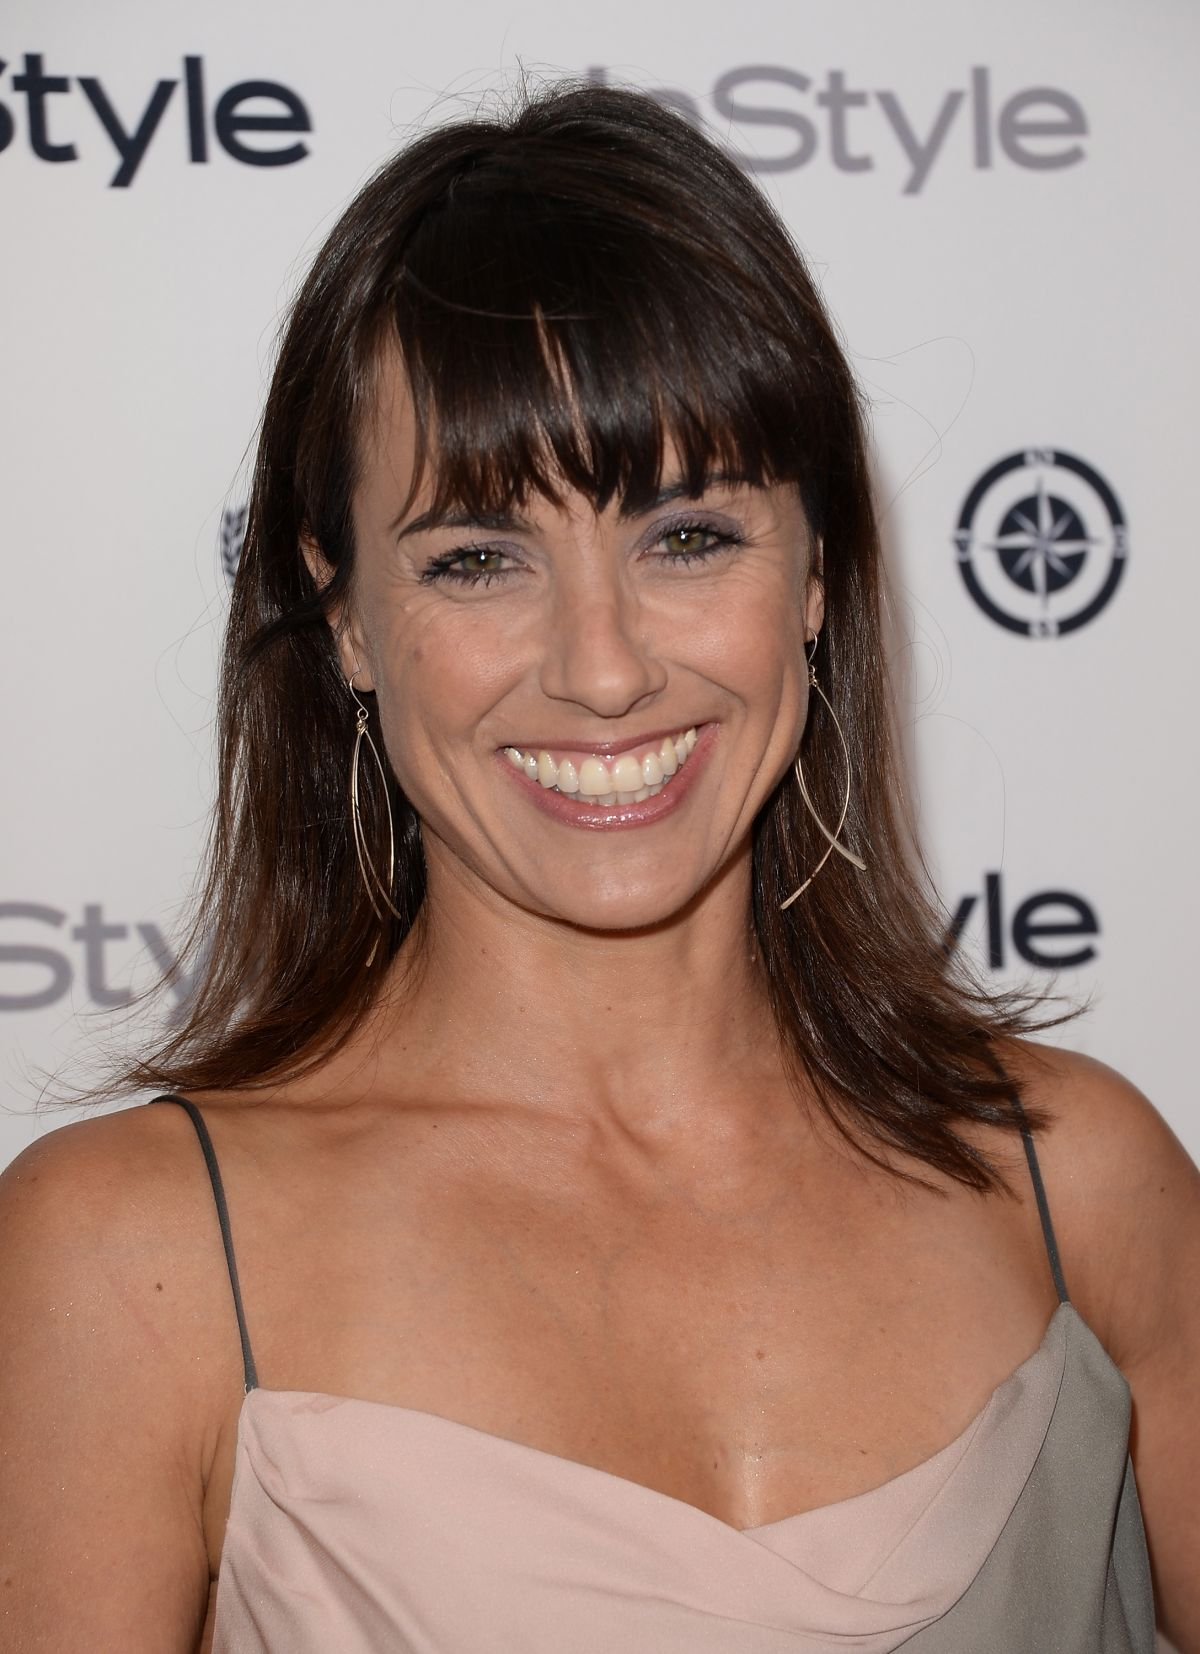 Constance Zimmer earned a  million dollar salary - leaving the net worth at 5 million in 2018